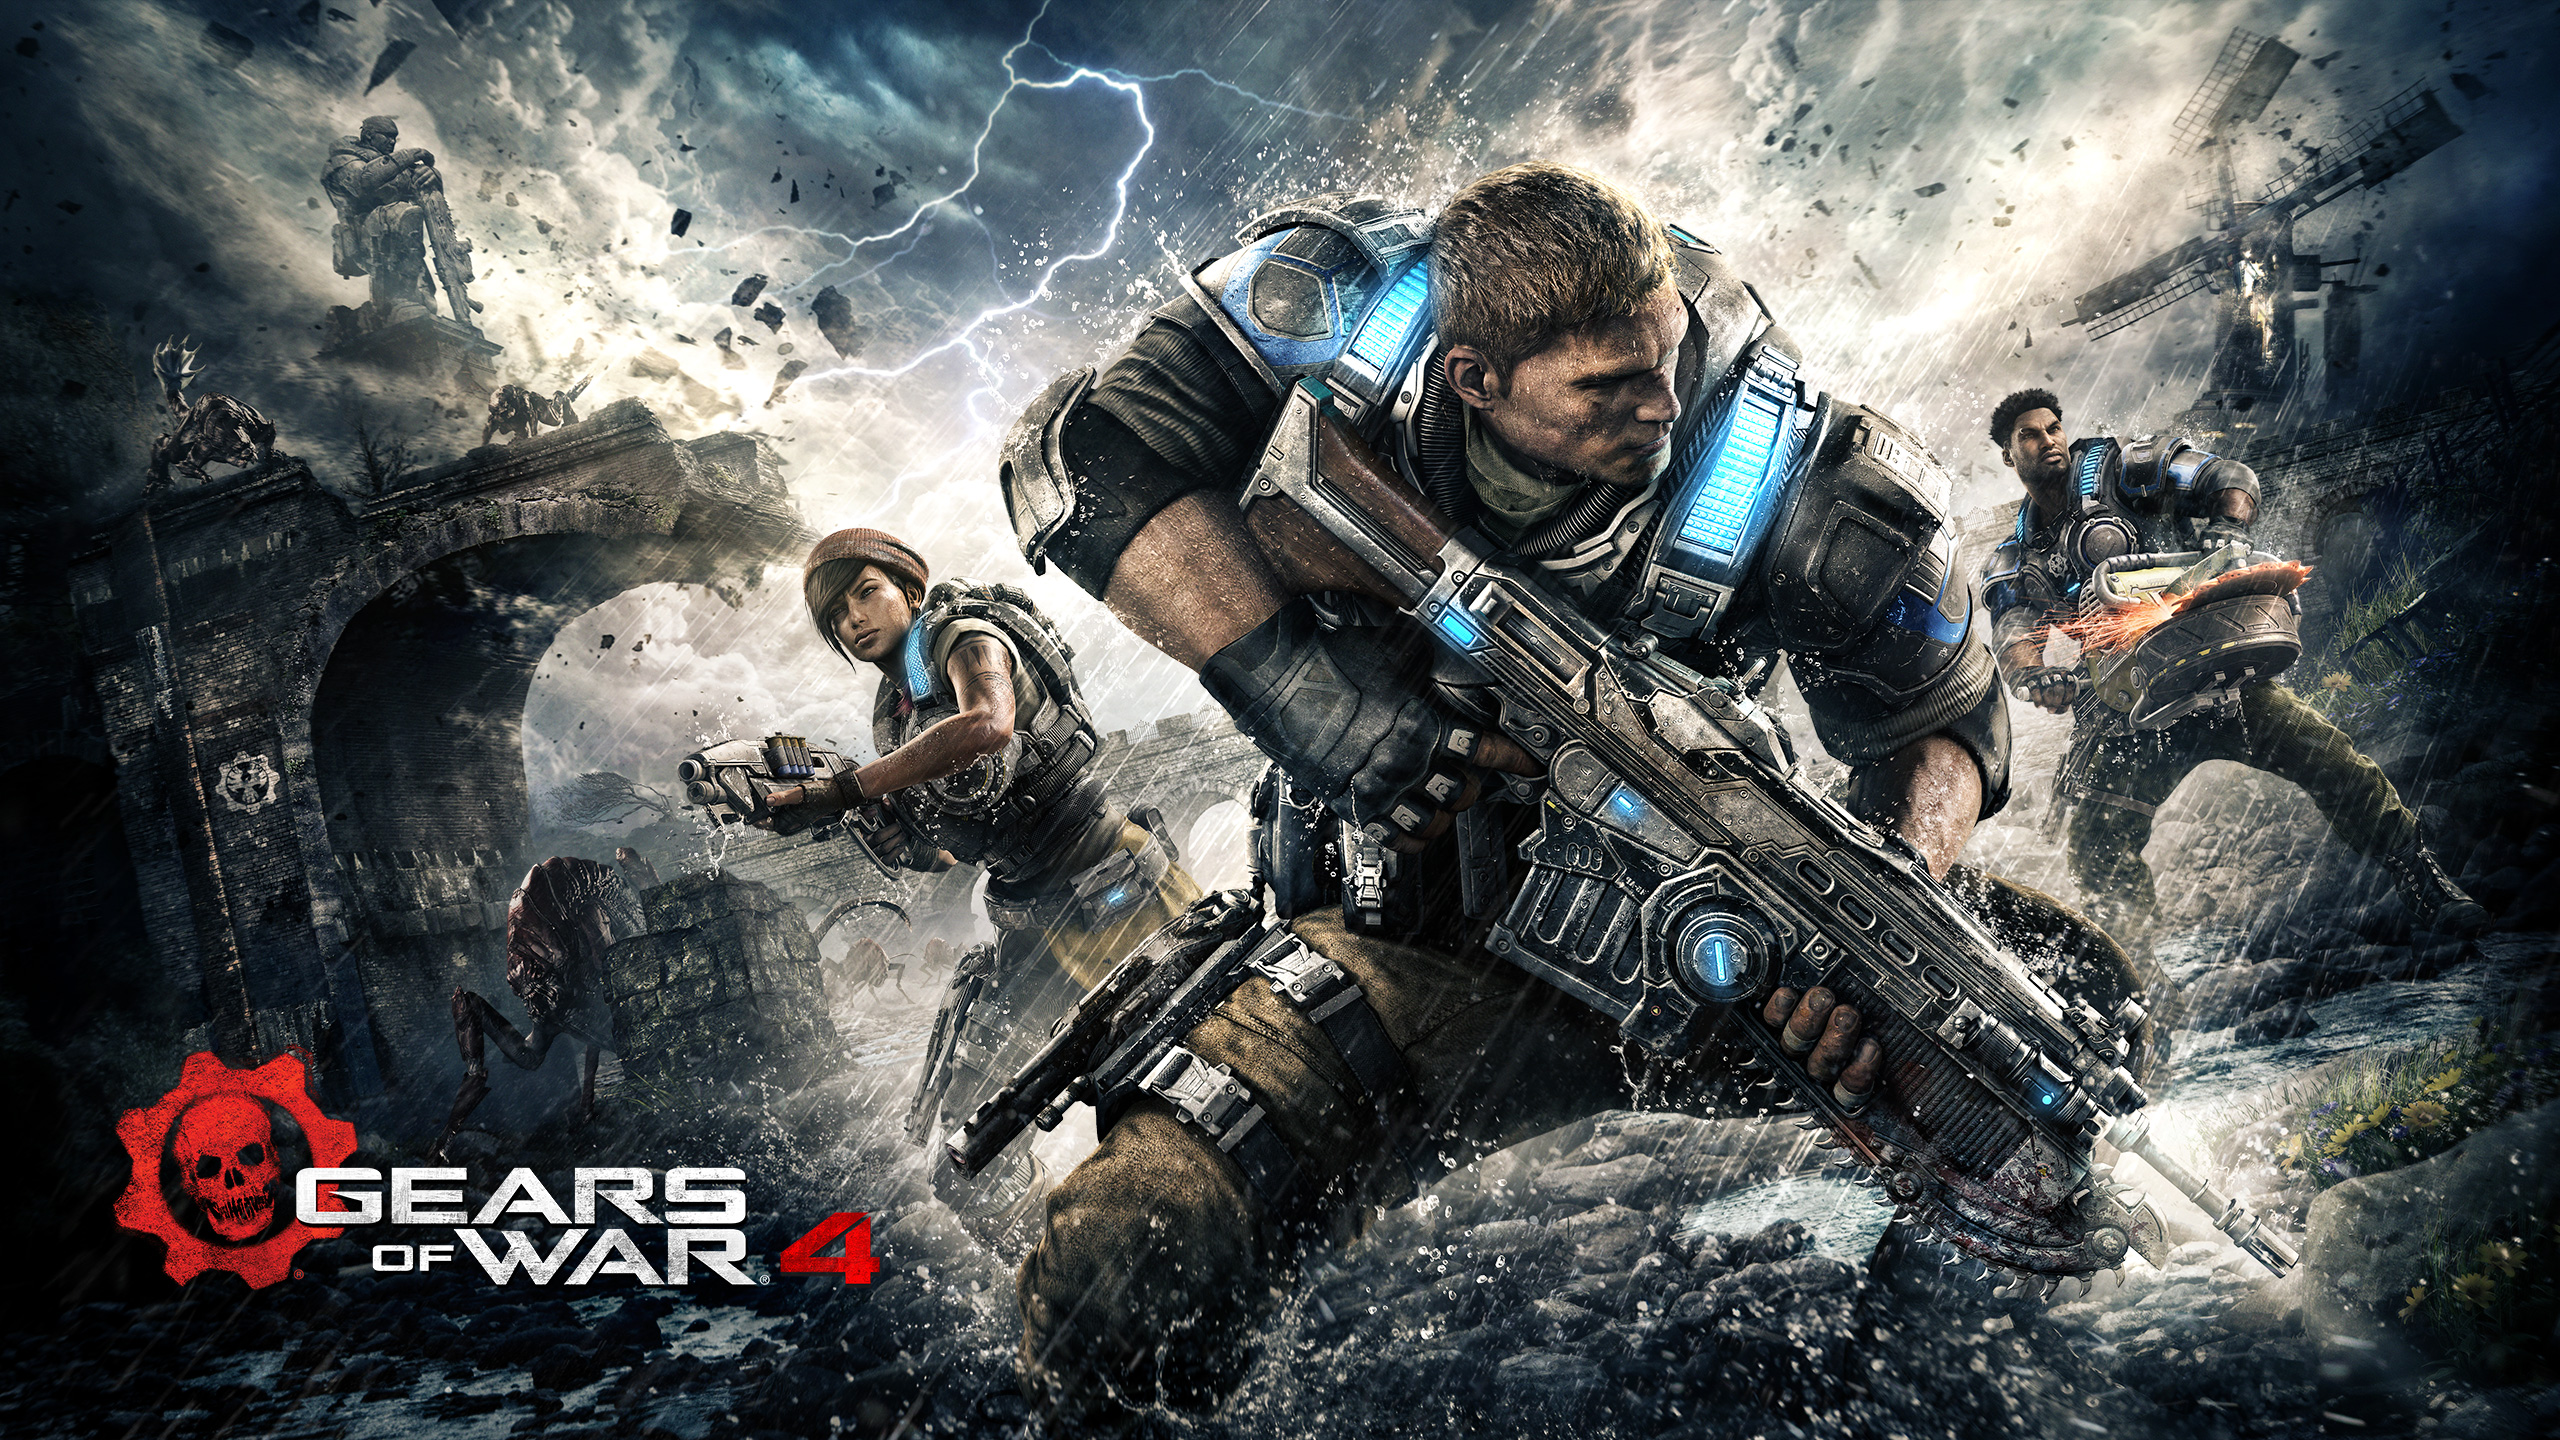 283 Gears Of War Hd Wallpapers Background Images Wallpaper Abyss